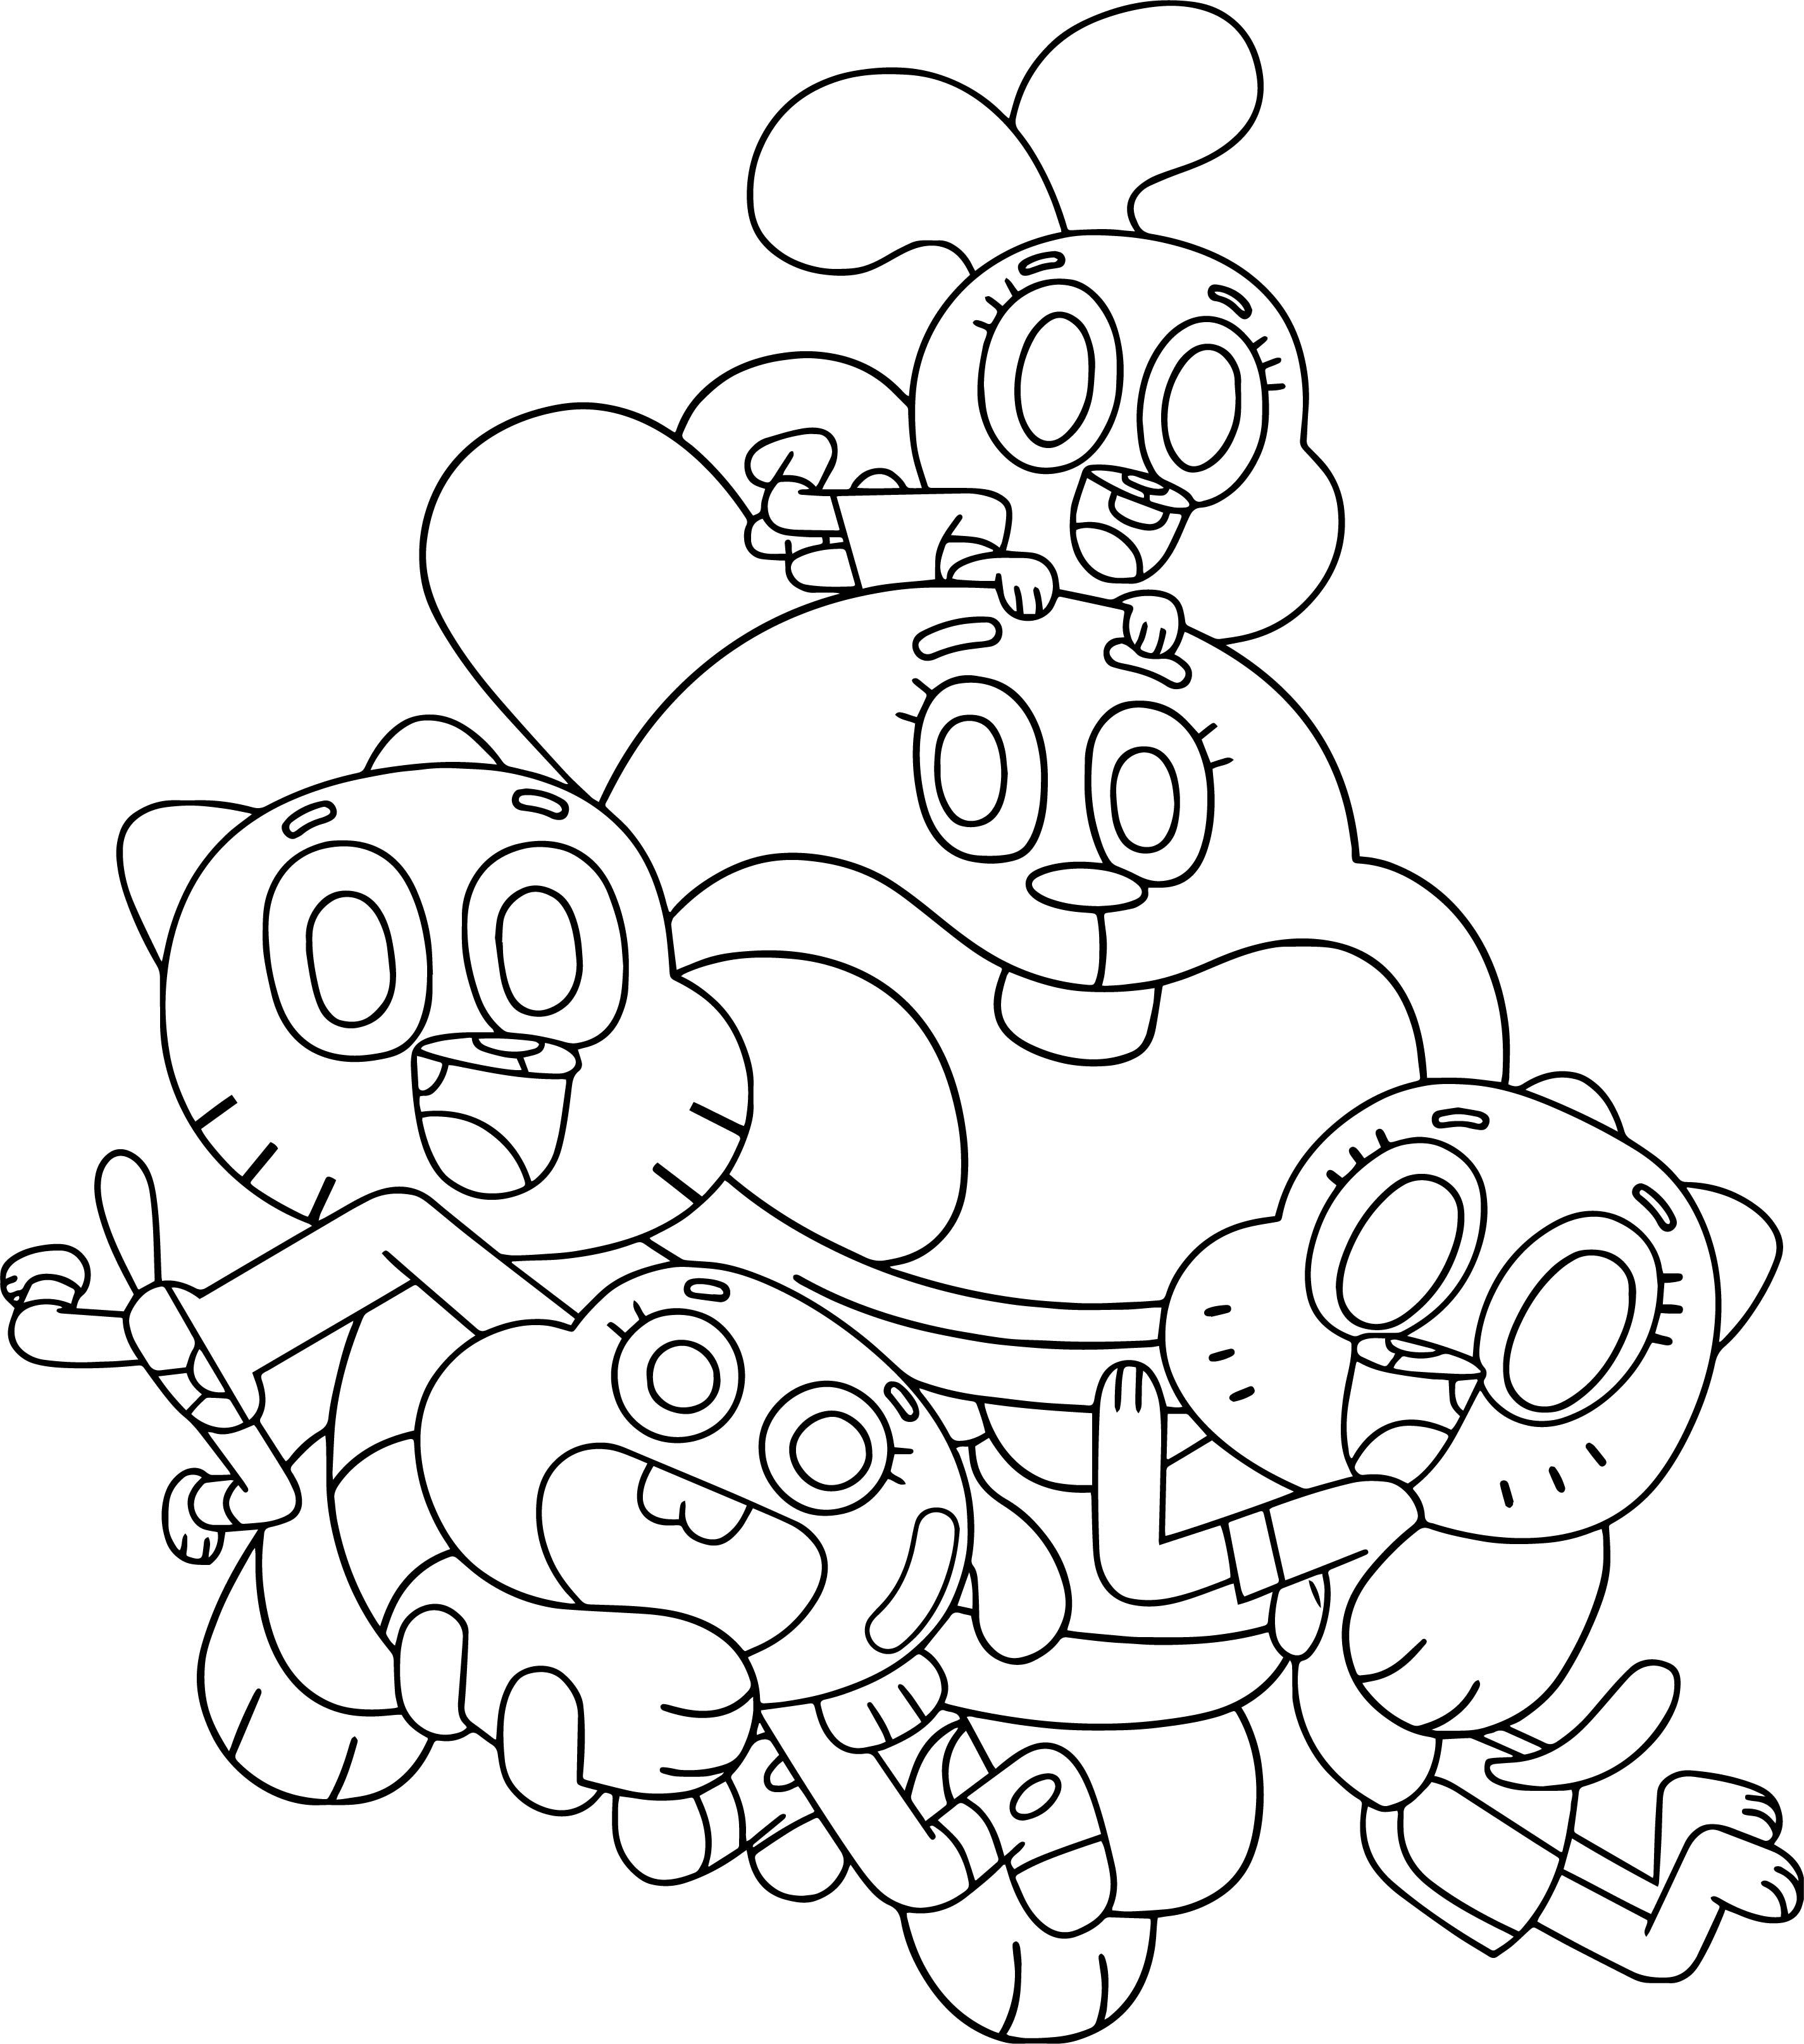 gumball cartoon coloring pages gumball the cat coloring pages the cartoon tripafethna coloring cartoon pages gumball